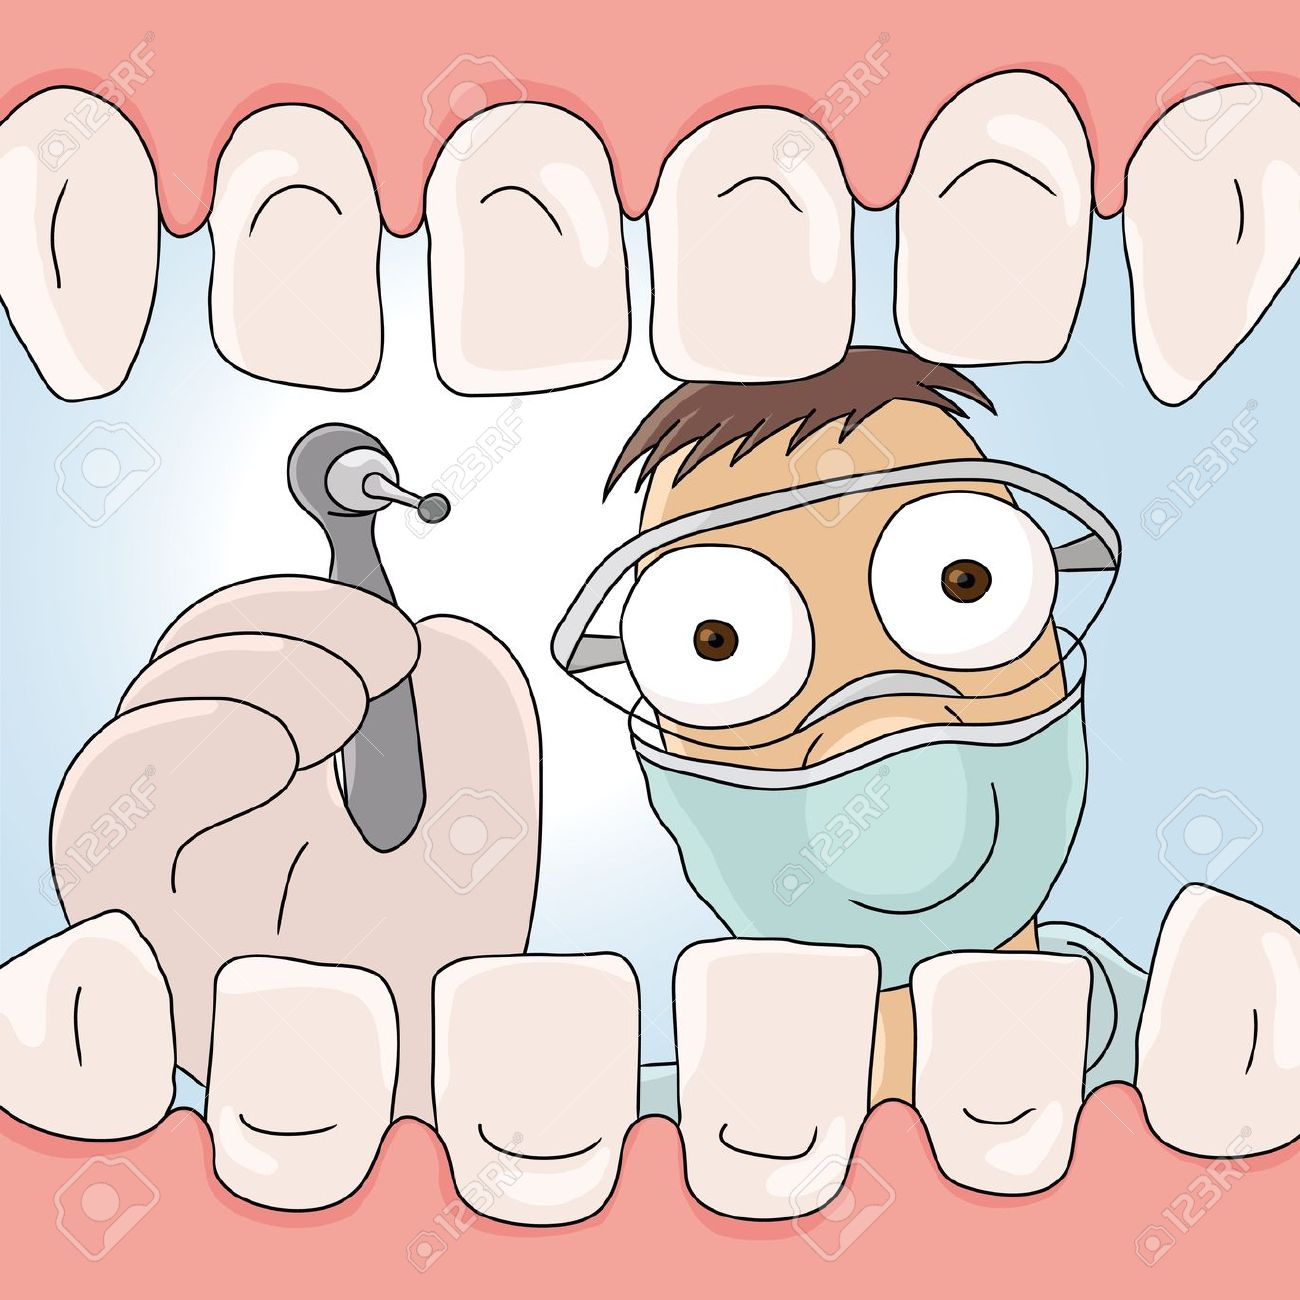 dentist-cartoon-teeth